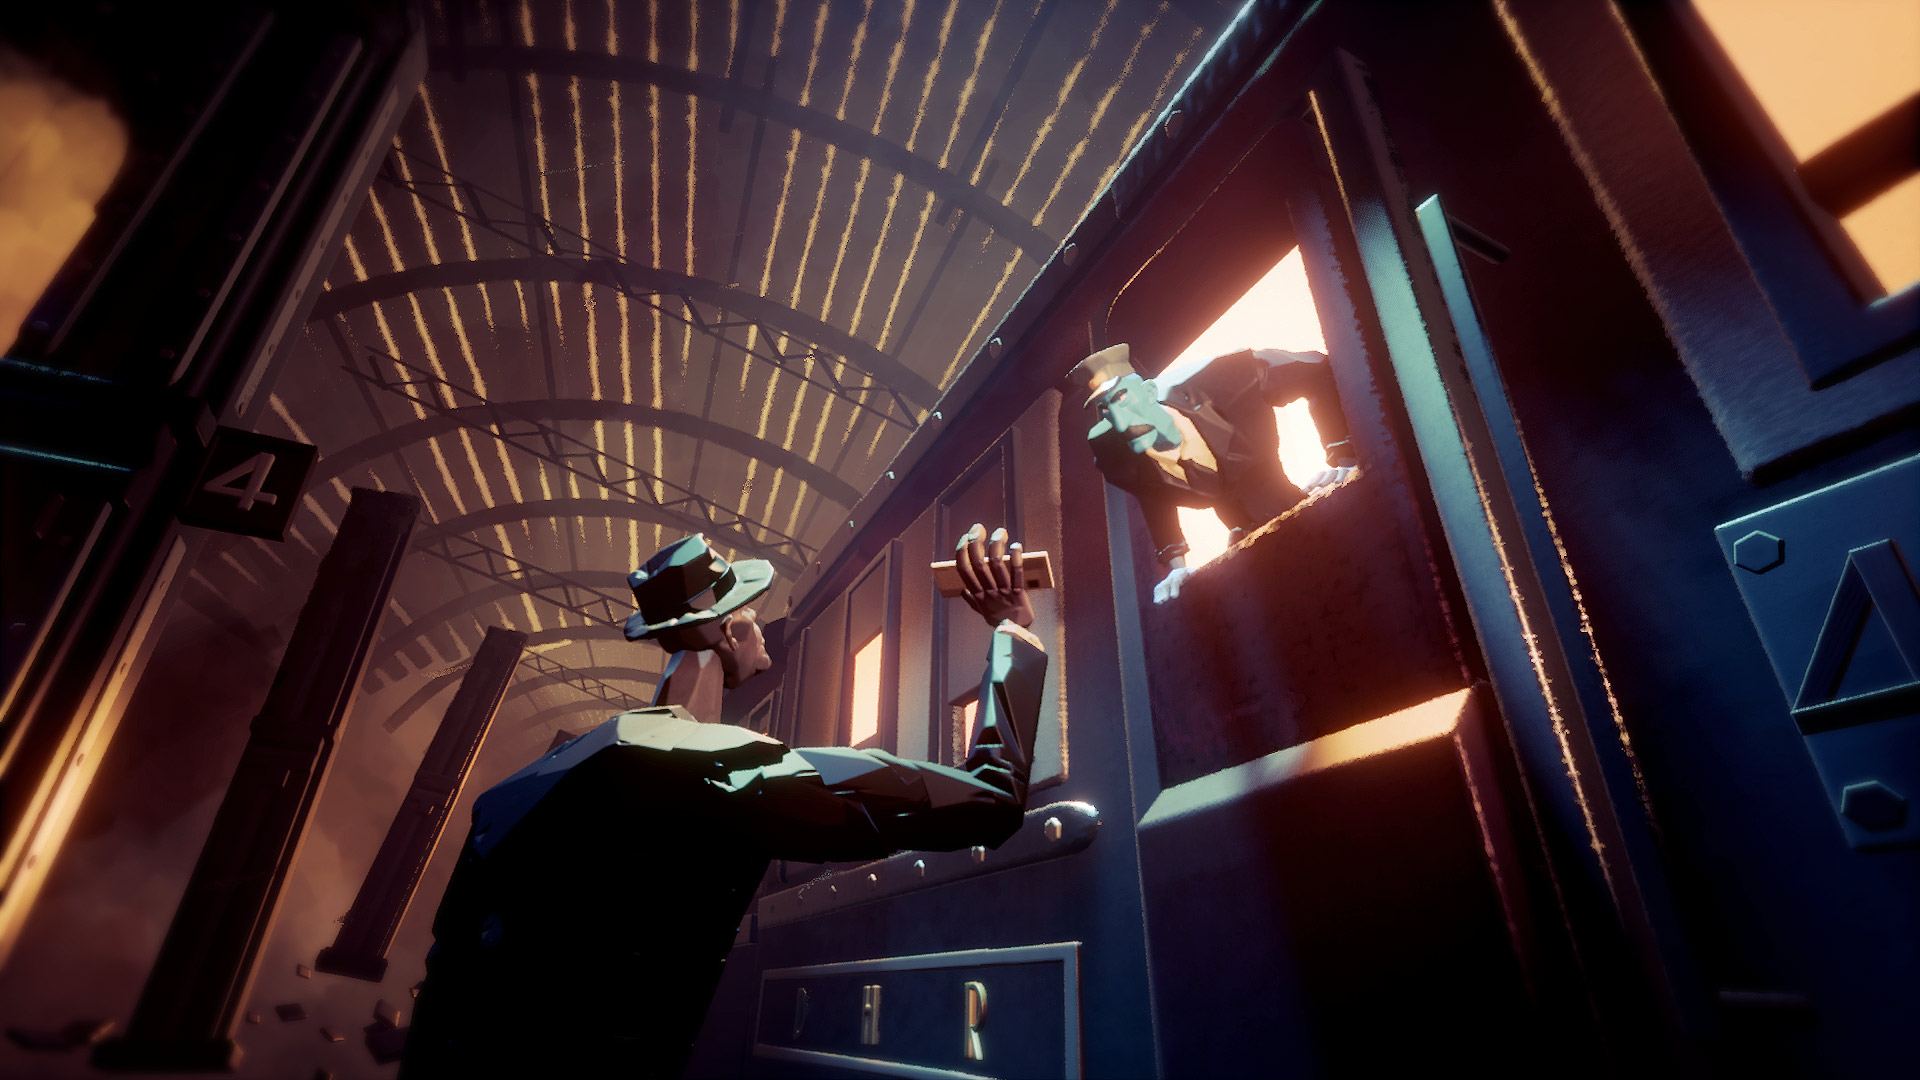 Media Molecule's 'Dreams' Confirmed to Support PSVR at Launch – Road